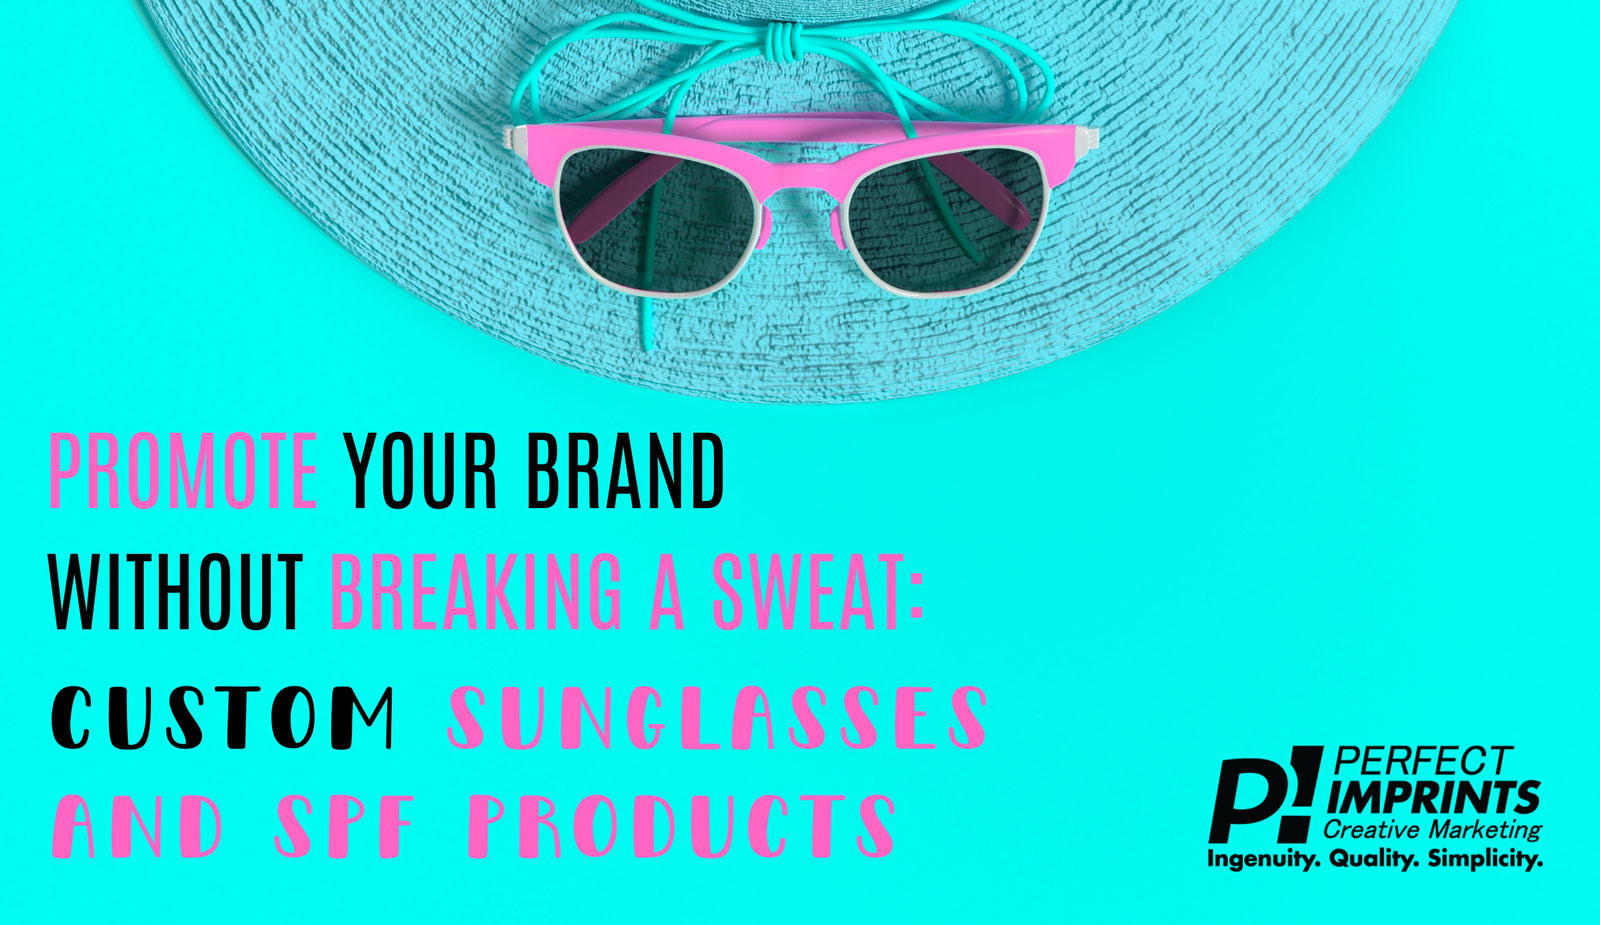 Custom Sunglasses and Promotional Sunscreen